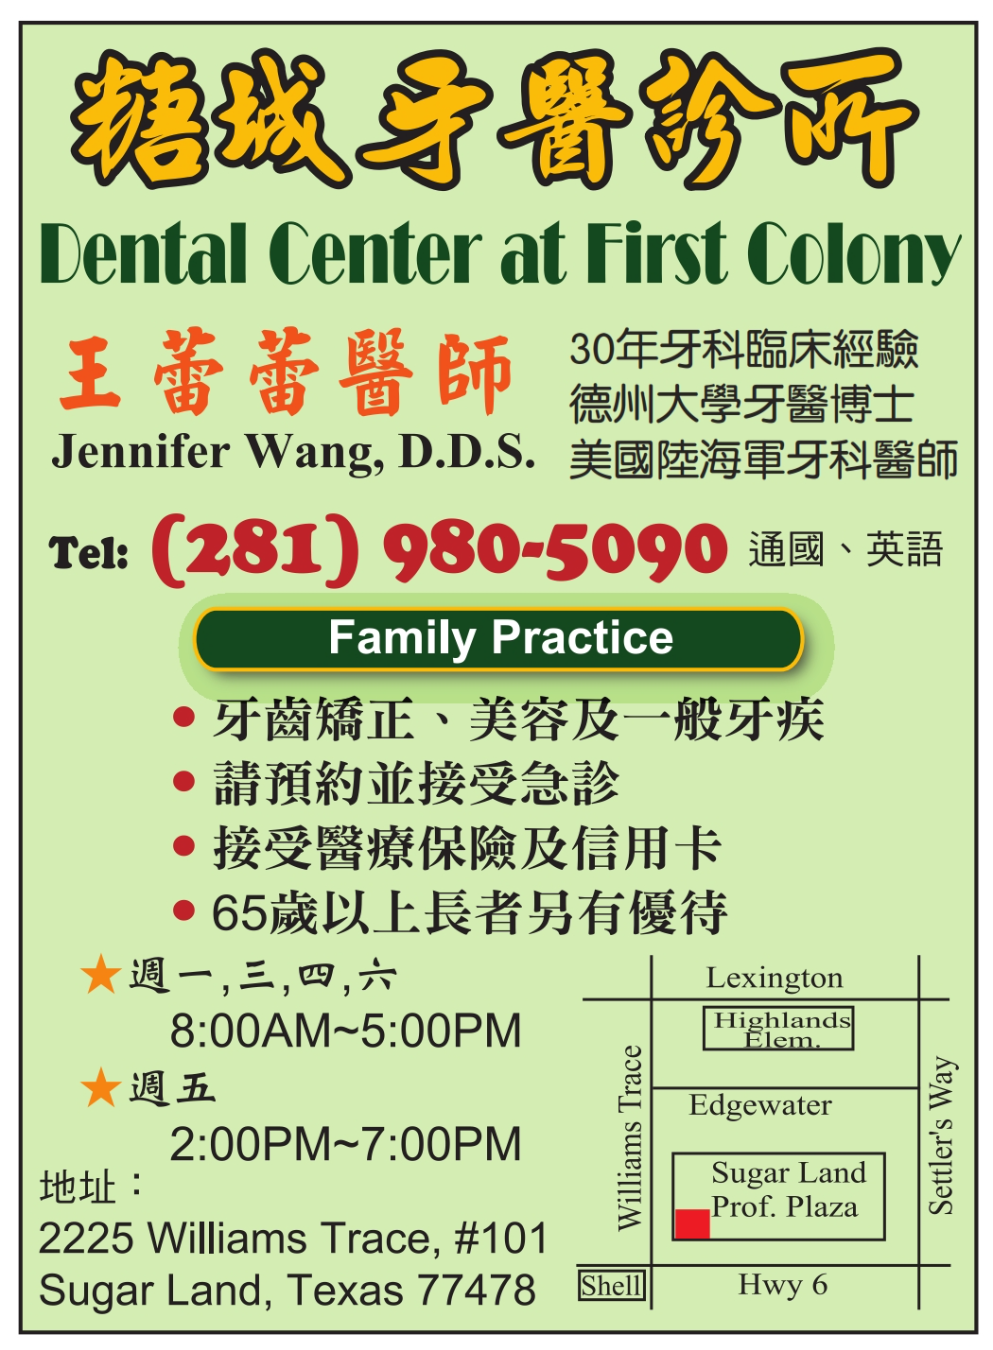 Dental Center at First Colony 糖城牙醫診所-王蕾蕾